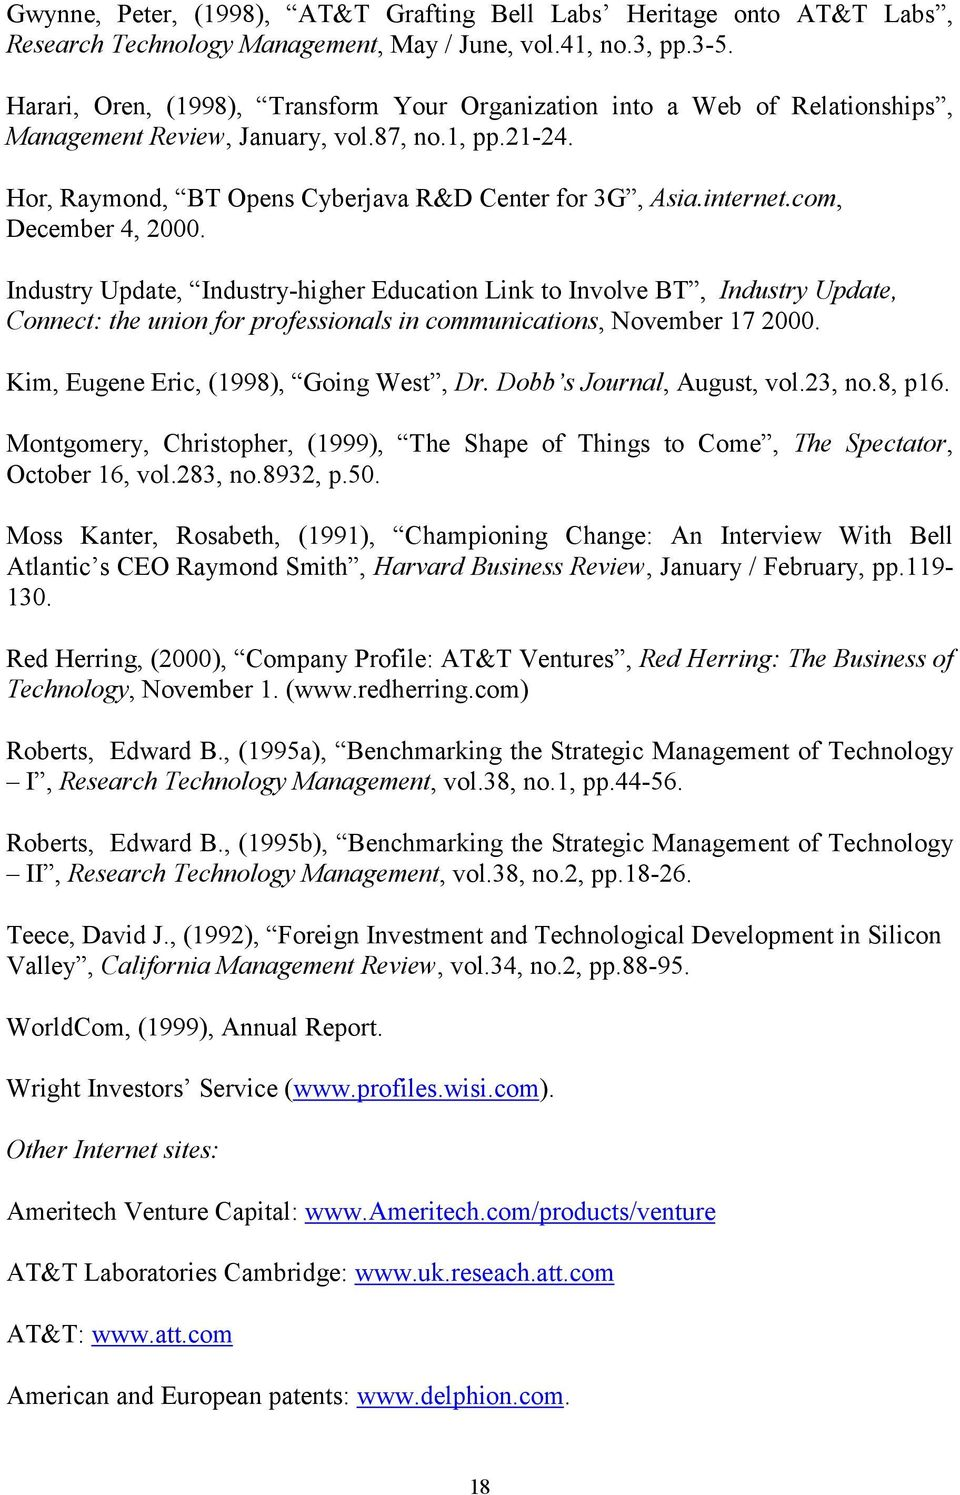 com, December 4, 2000. Industry Update, Industry-higher Education Link to Involve BT, Industry Update, Connect: the union for professionals in communications, November 17 2000.